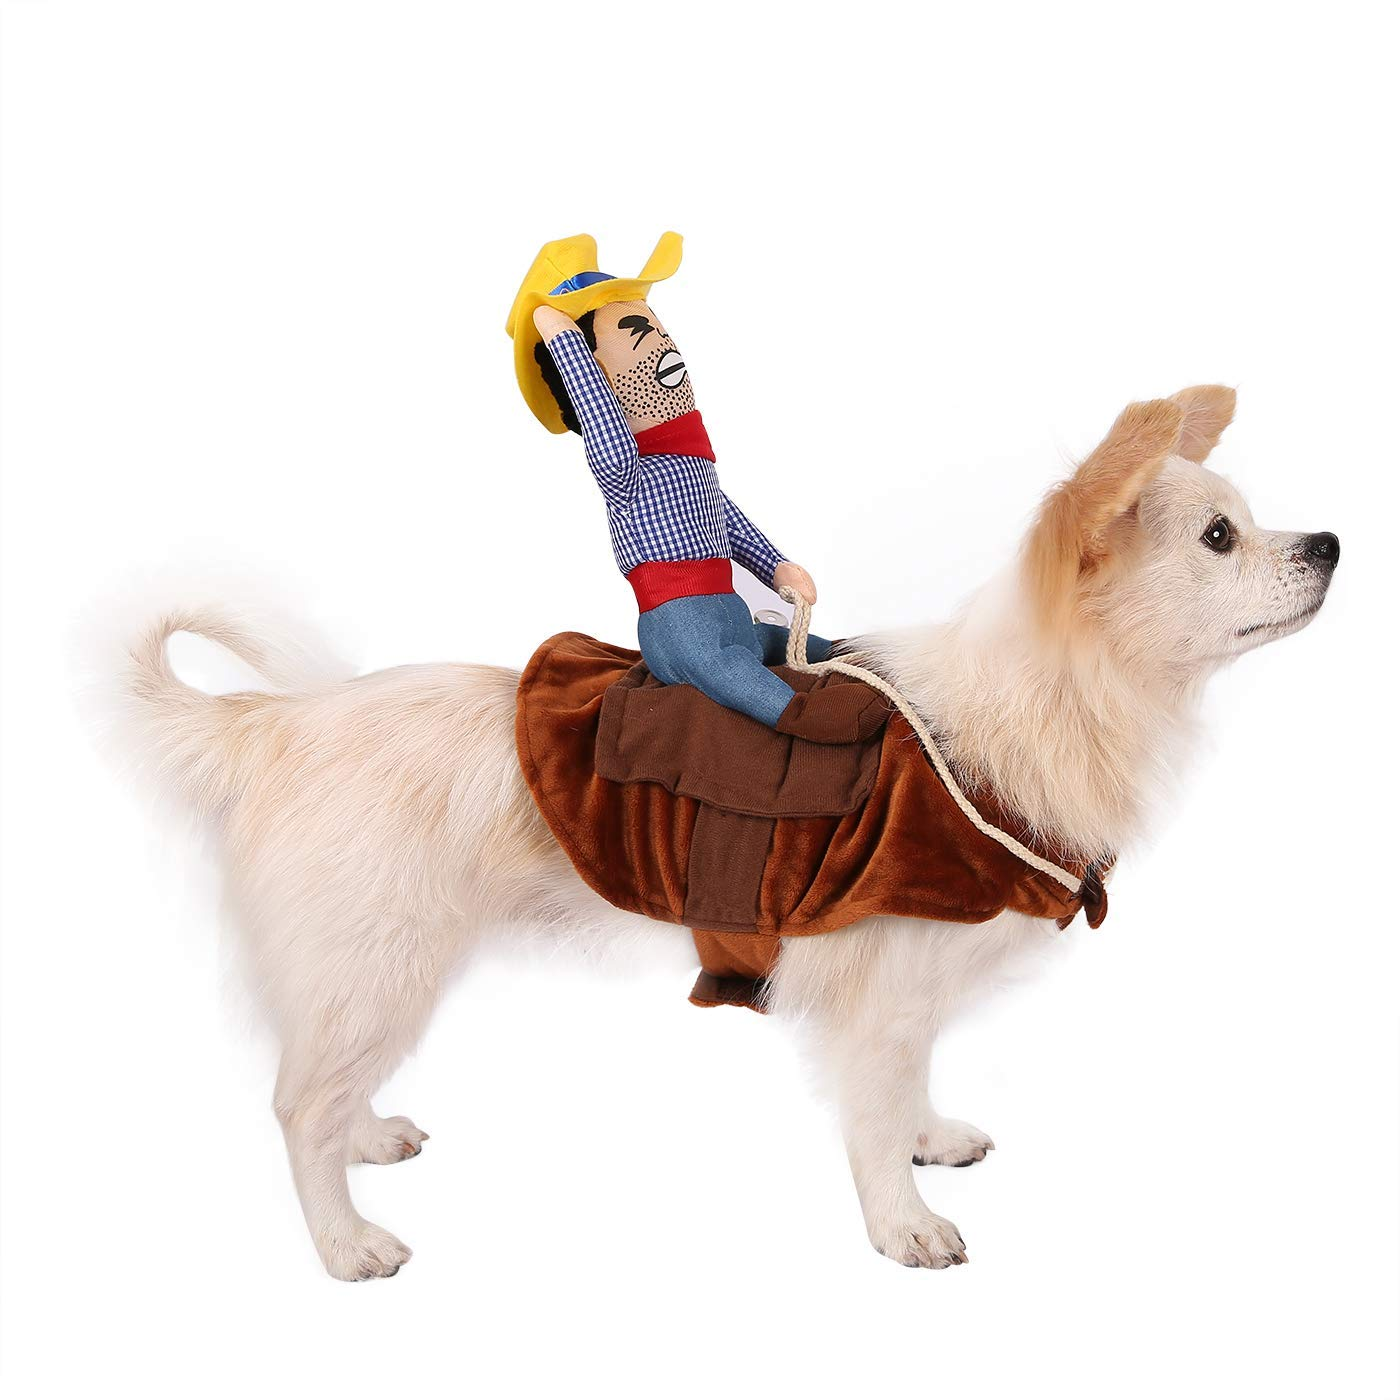 HDE Cowboy Dog Costume Halloween Pet Apparel Soft Saddle with Stuffed Cowboy  Outfit for Medium and f7e1905b2